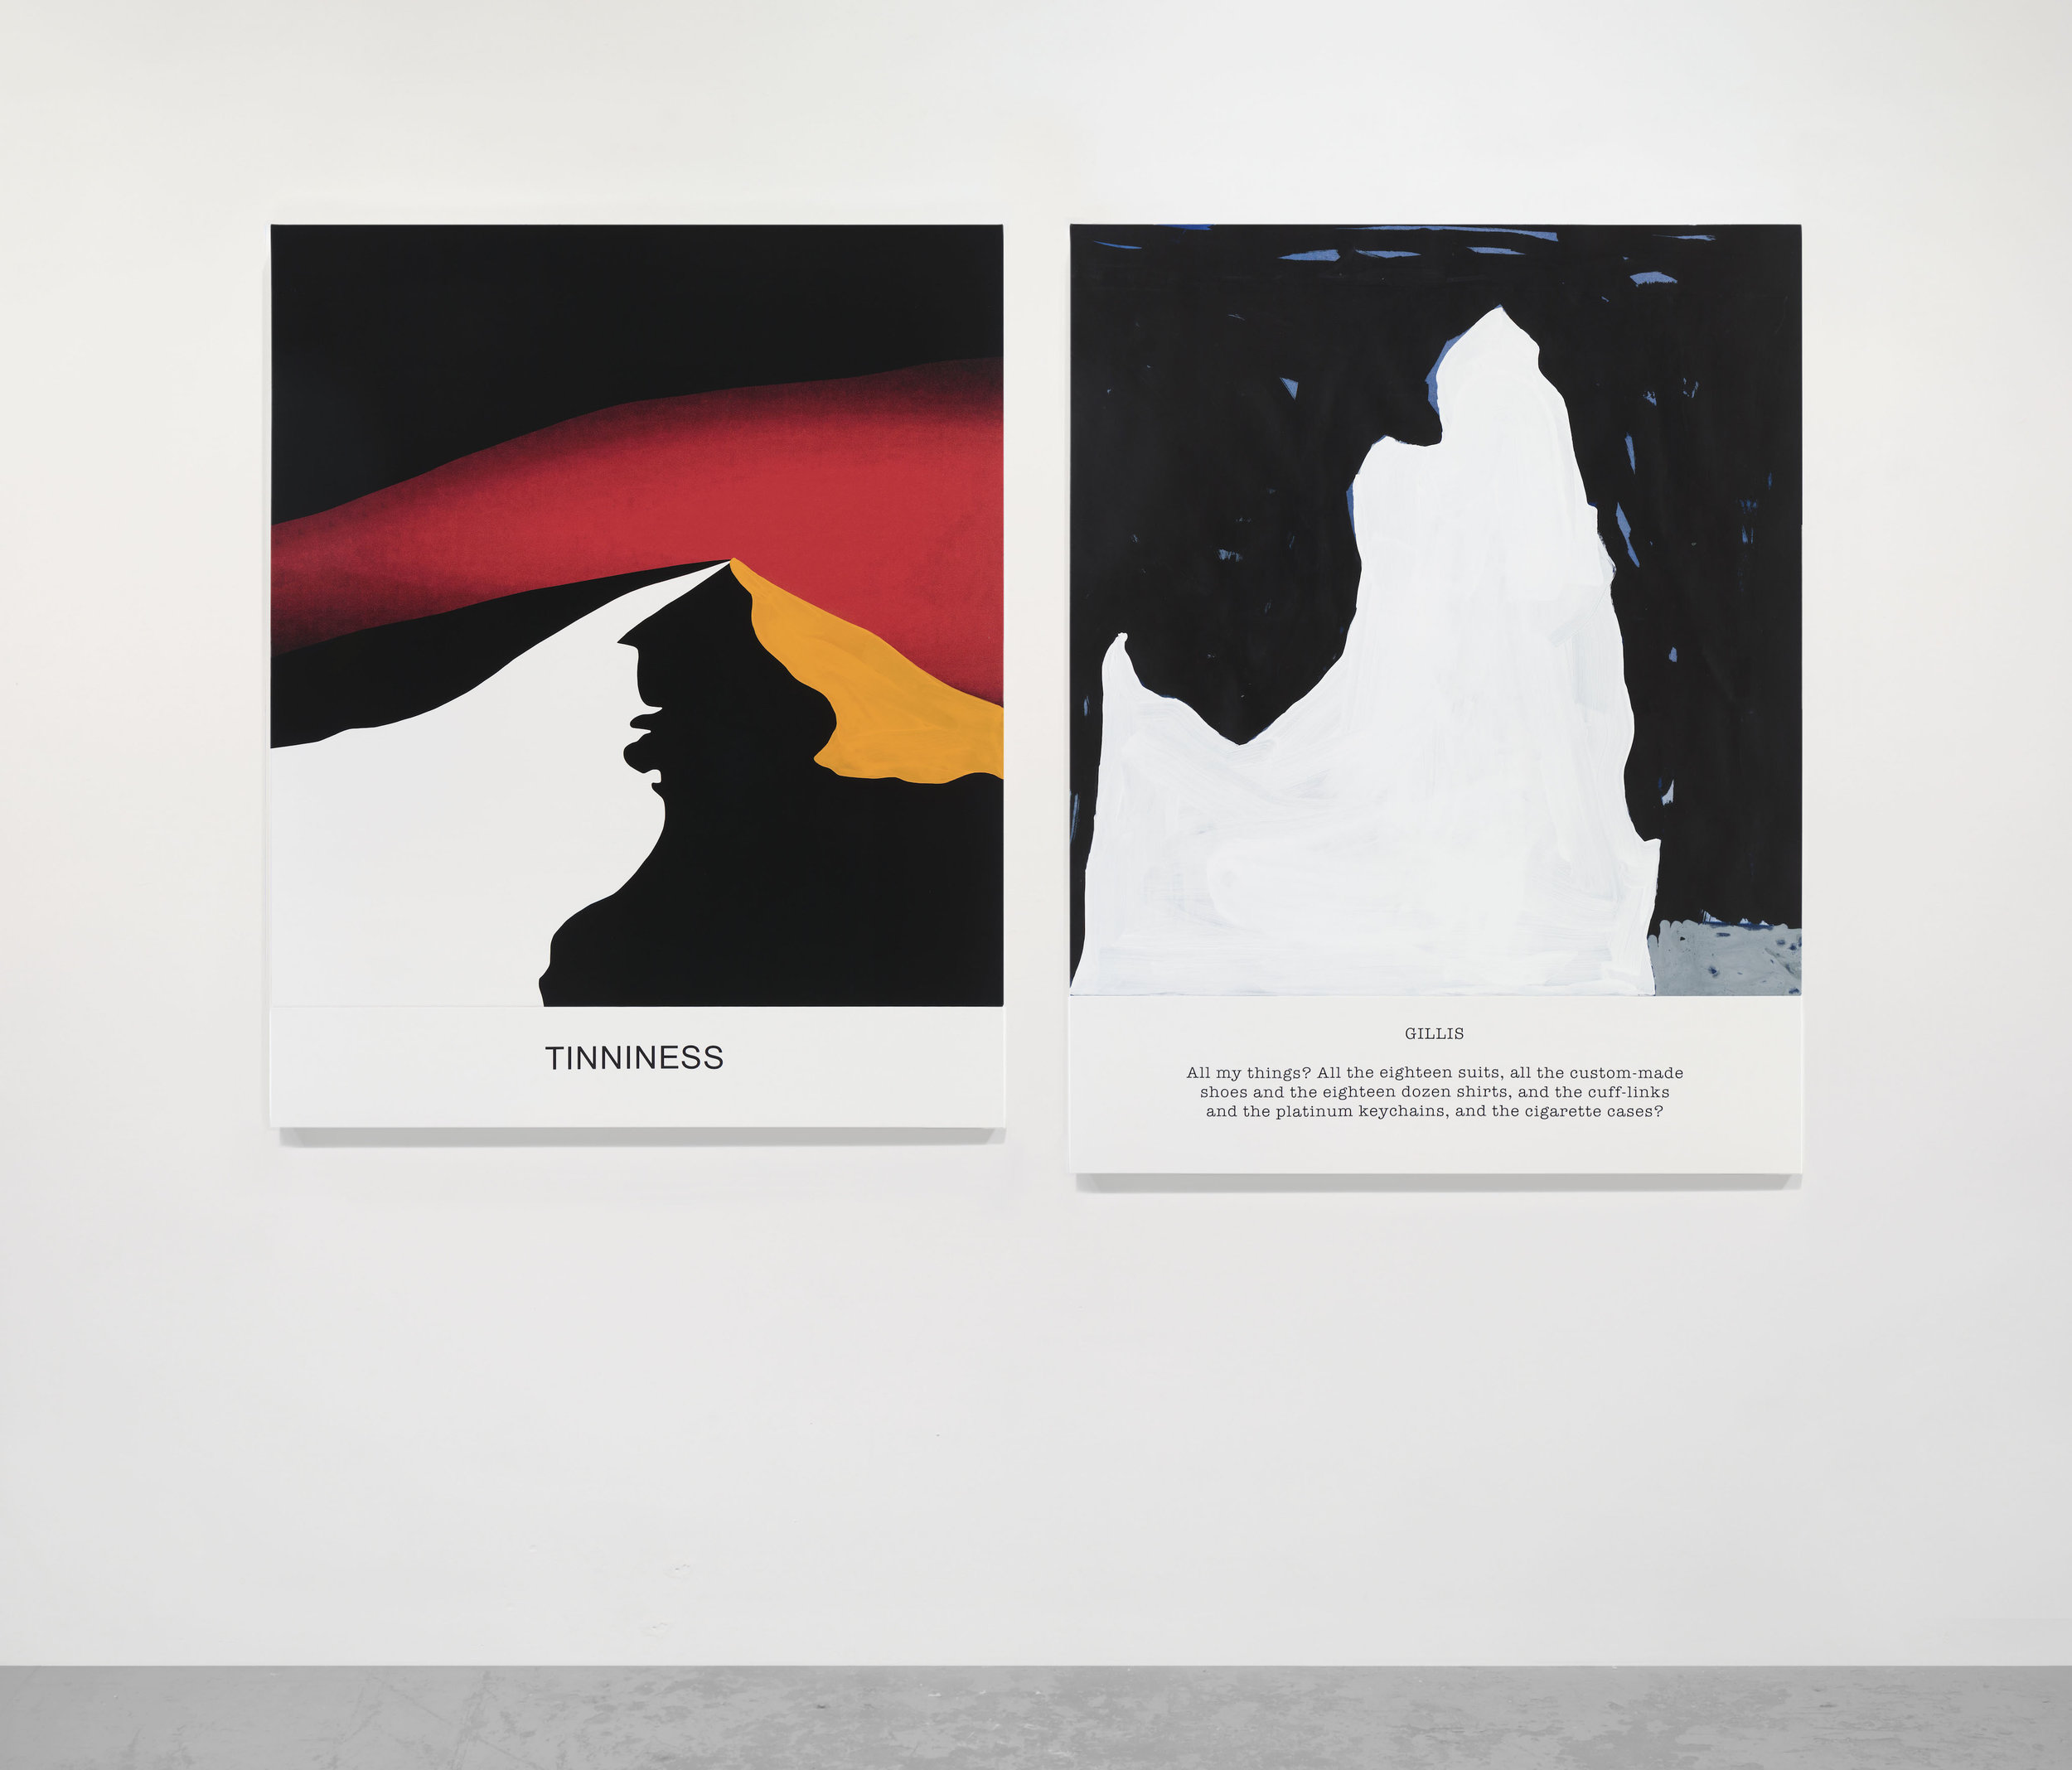 John Baldessari, Hot & Cold Series: TINNINESS, GILLIS All my things? , 2018. Varnished inkjet prints on canvas with acrylic paint. Volcano: 55 1/2 x 45 x 1 1/2 in. (141 x 114.3 x 3.8 cm). Iceberg: 58 5/8 x 45 x 1 1/2 in. (148.7 x 114.3 x 3.8 cm) (22377). Courtesy of Marian Goodman Gallery.